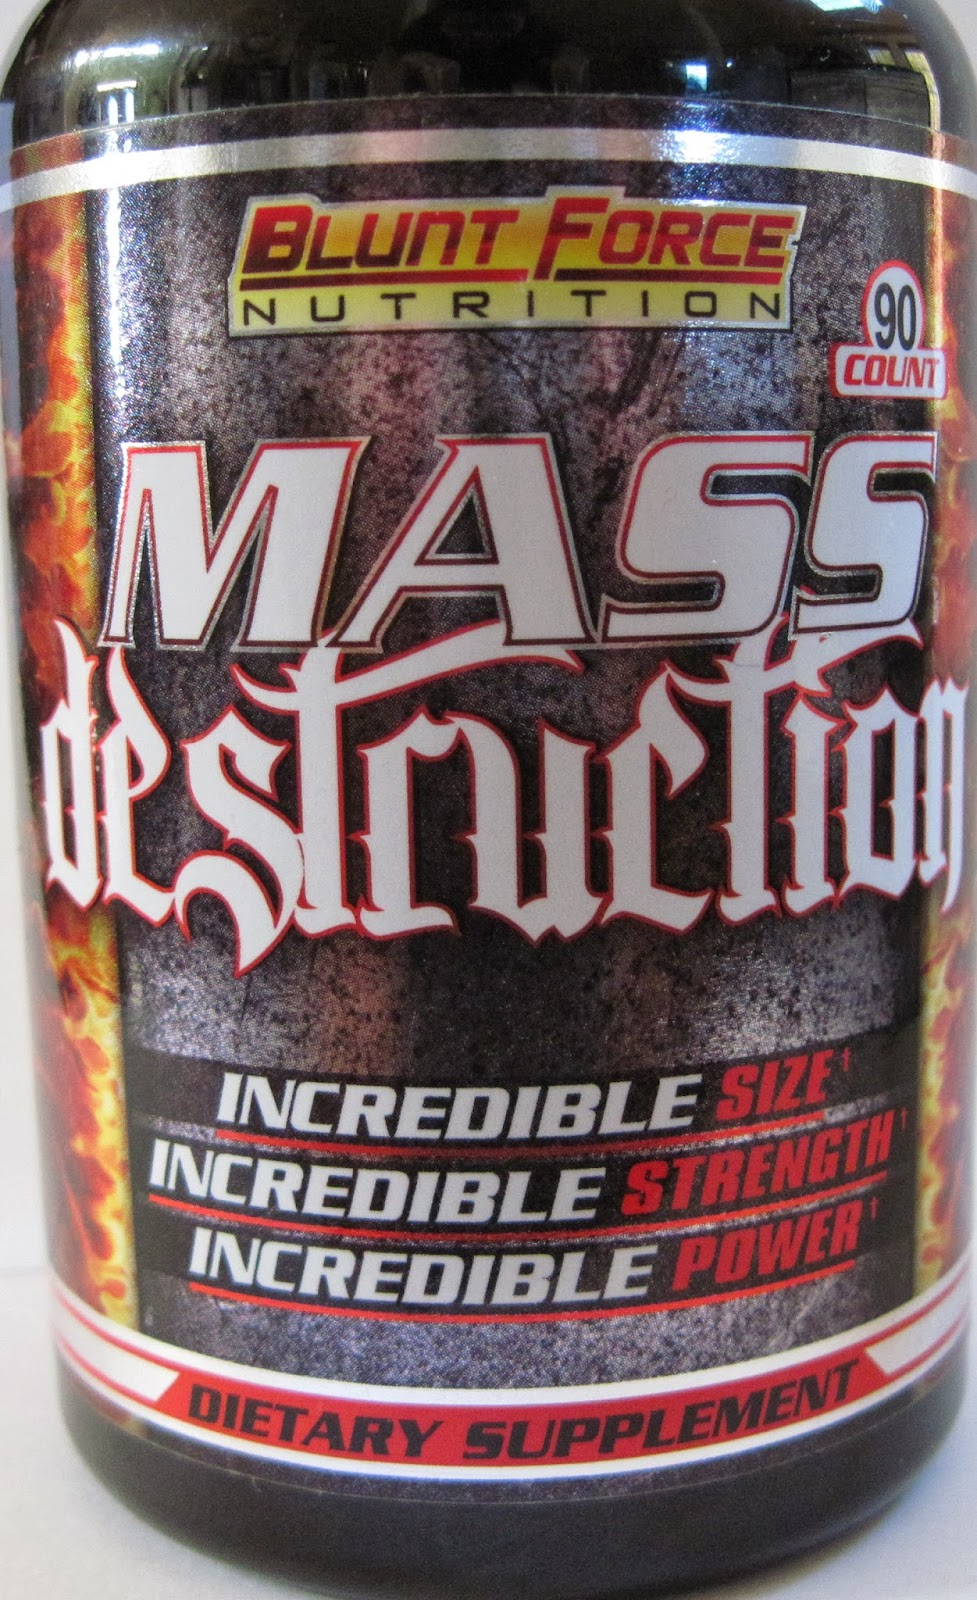 The U.S. Food and Drug Administration is advising consumers to immediately stop using a product called Mass Destruction, marketed as a dietary supplement for muscle growth. The product is labeled to contain at least one synthetic anabolic steroid and has been linked to at least one reported serious illness